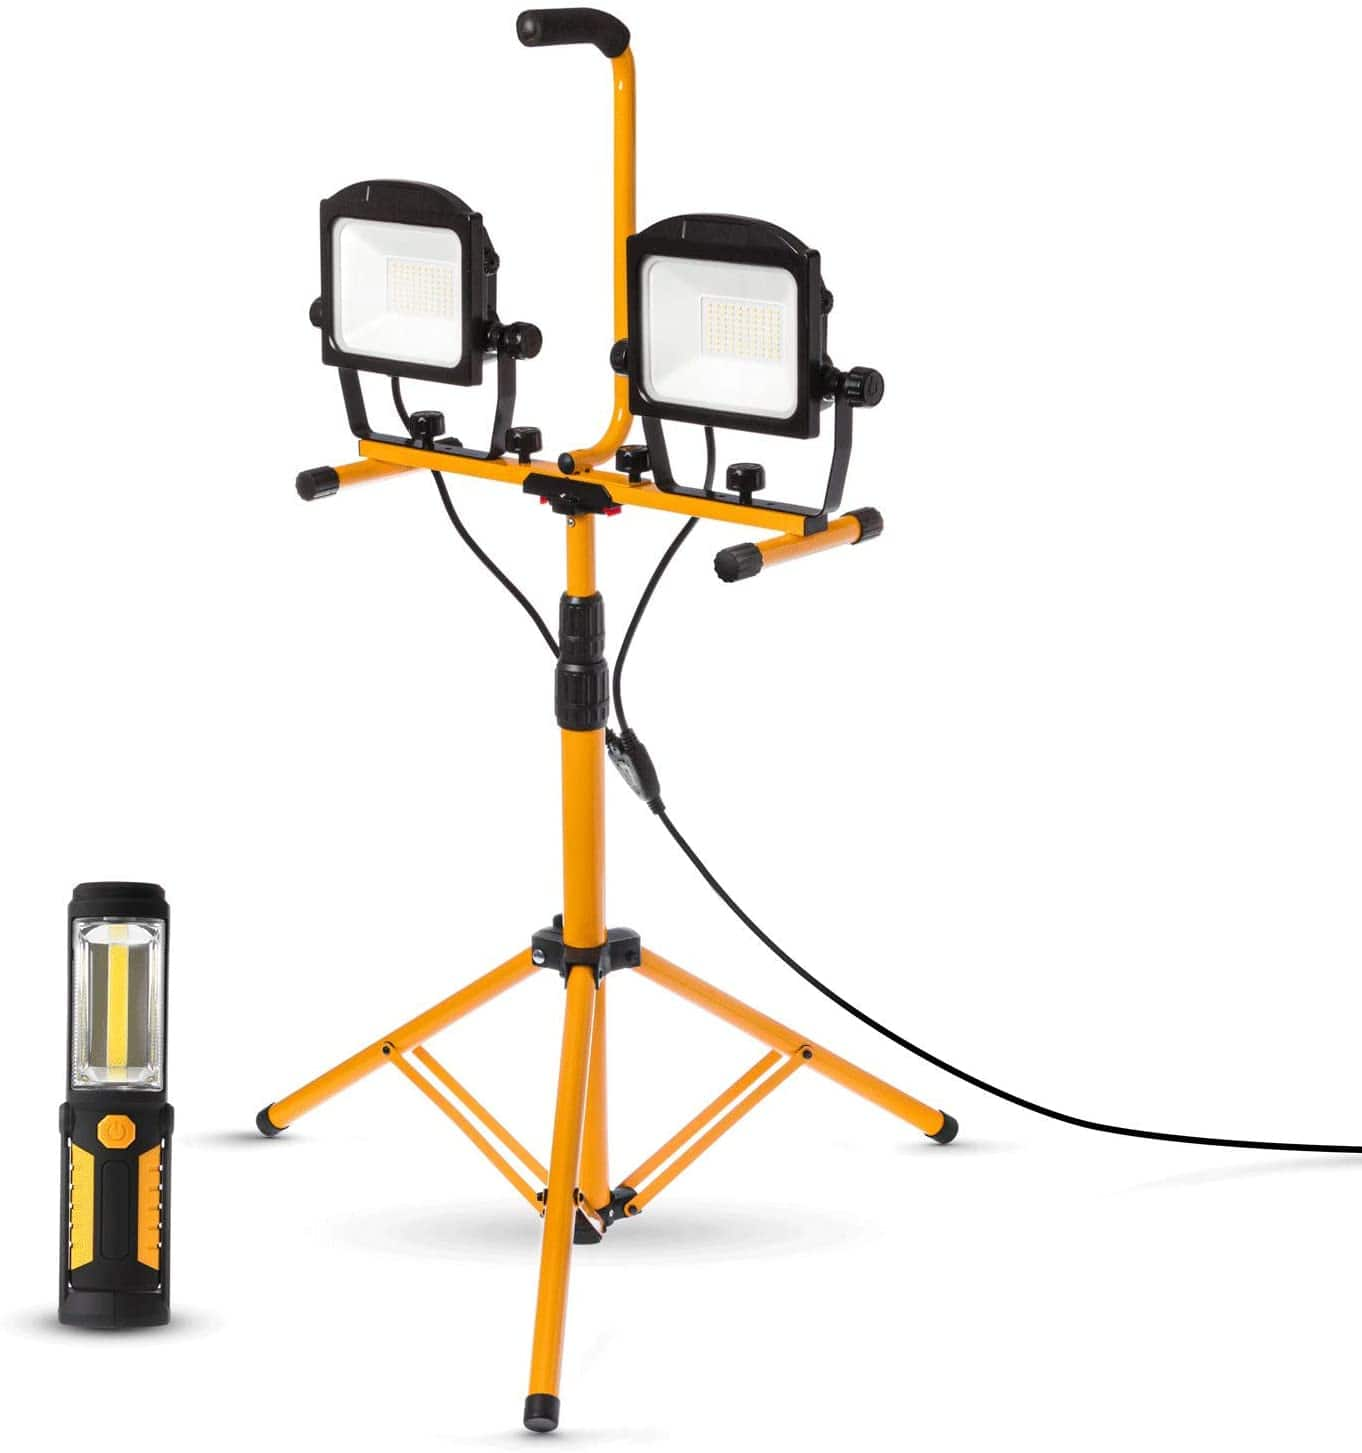 Home Zone Security 10,000 Lumen Dual Head LED Work Light with Tripod Stand - $77.99 + Free Shipping